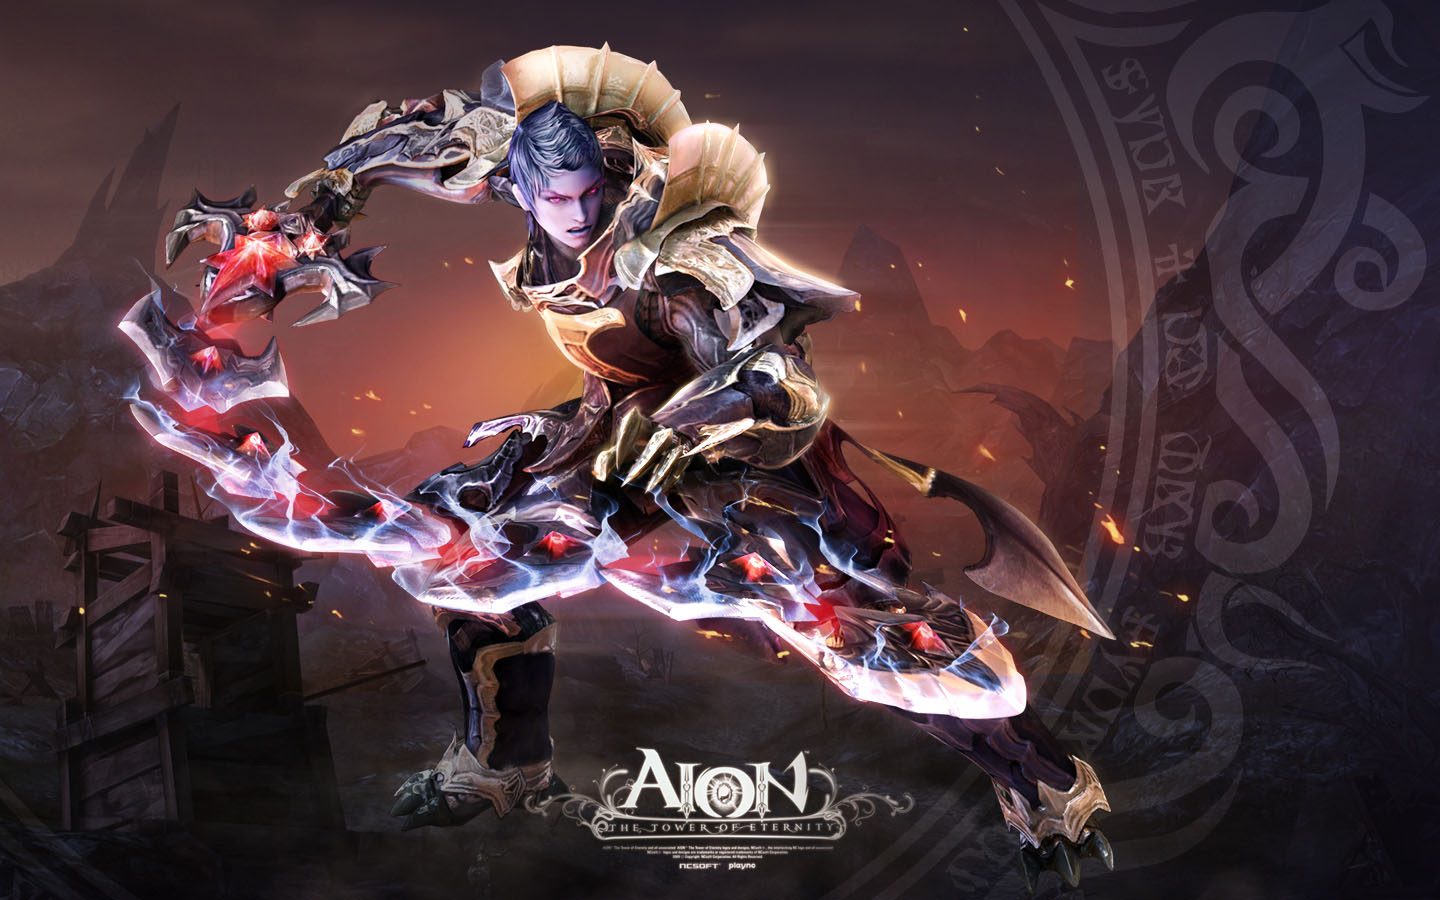 3d game fantasy character aion by jungwon park